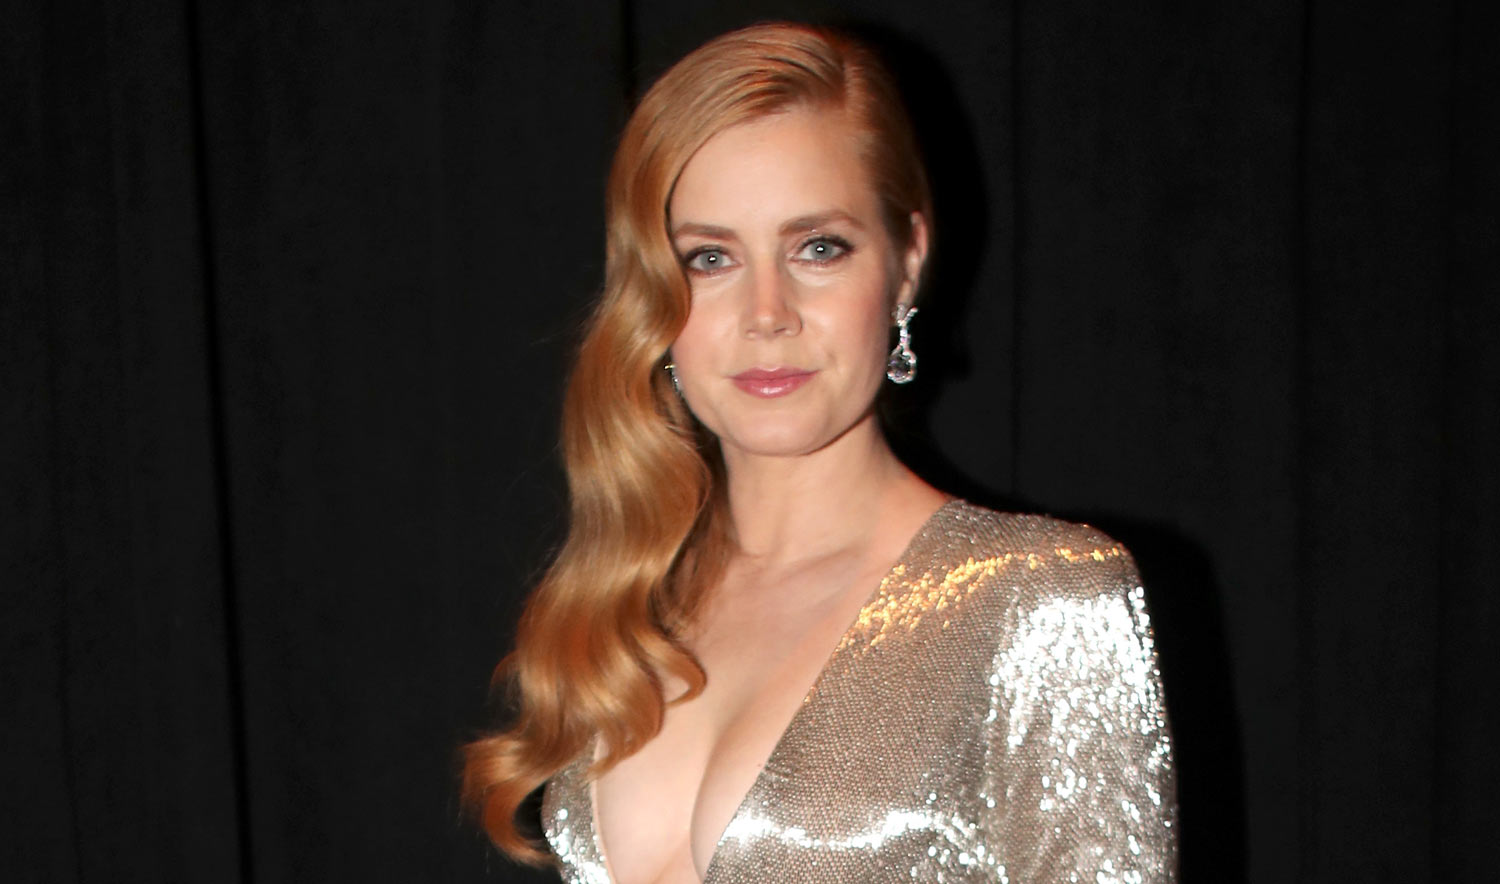 Amy Adams Shows Some Cleavage Presenting at Oscars 2017 | 2017 Oscars ... Amy Adams